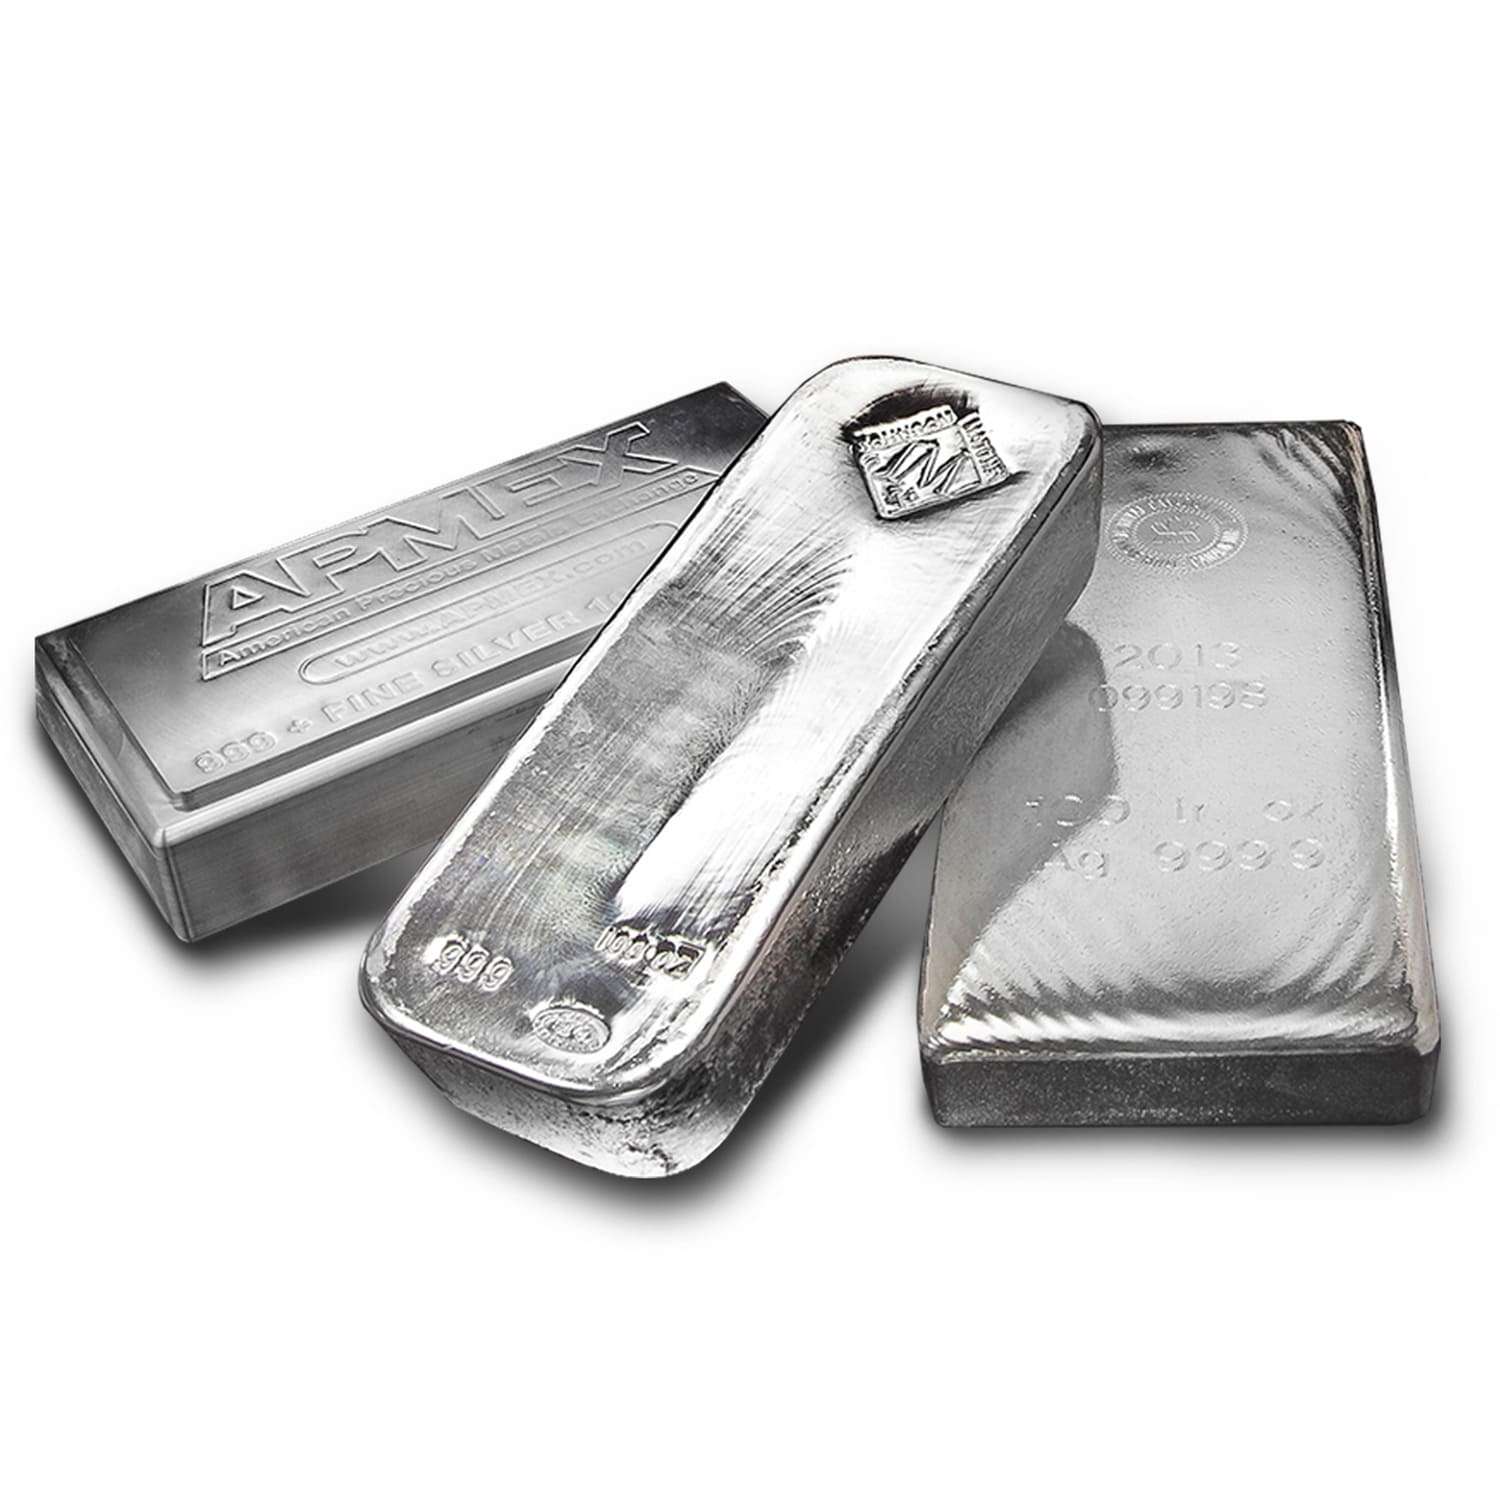 96.50 oz Silver Bars - Secondary Market